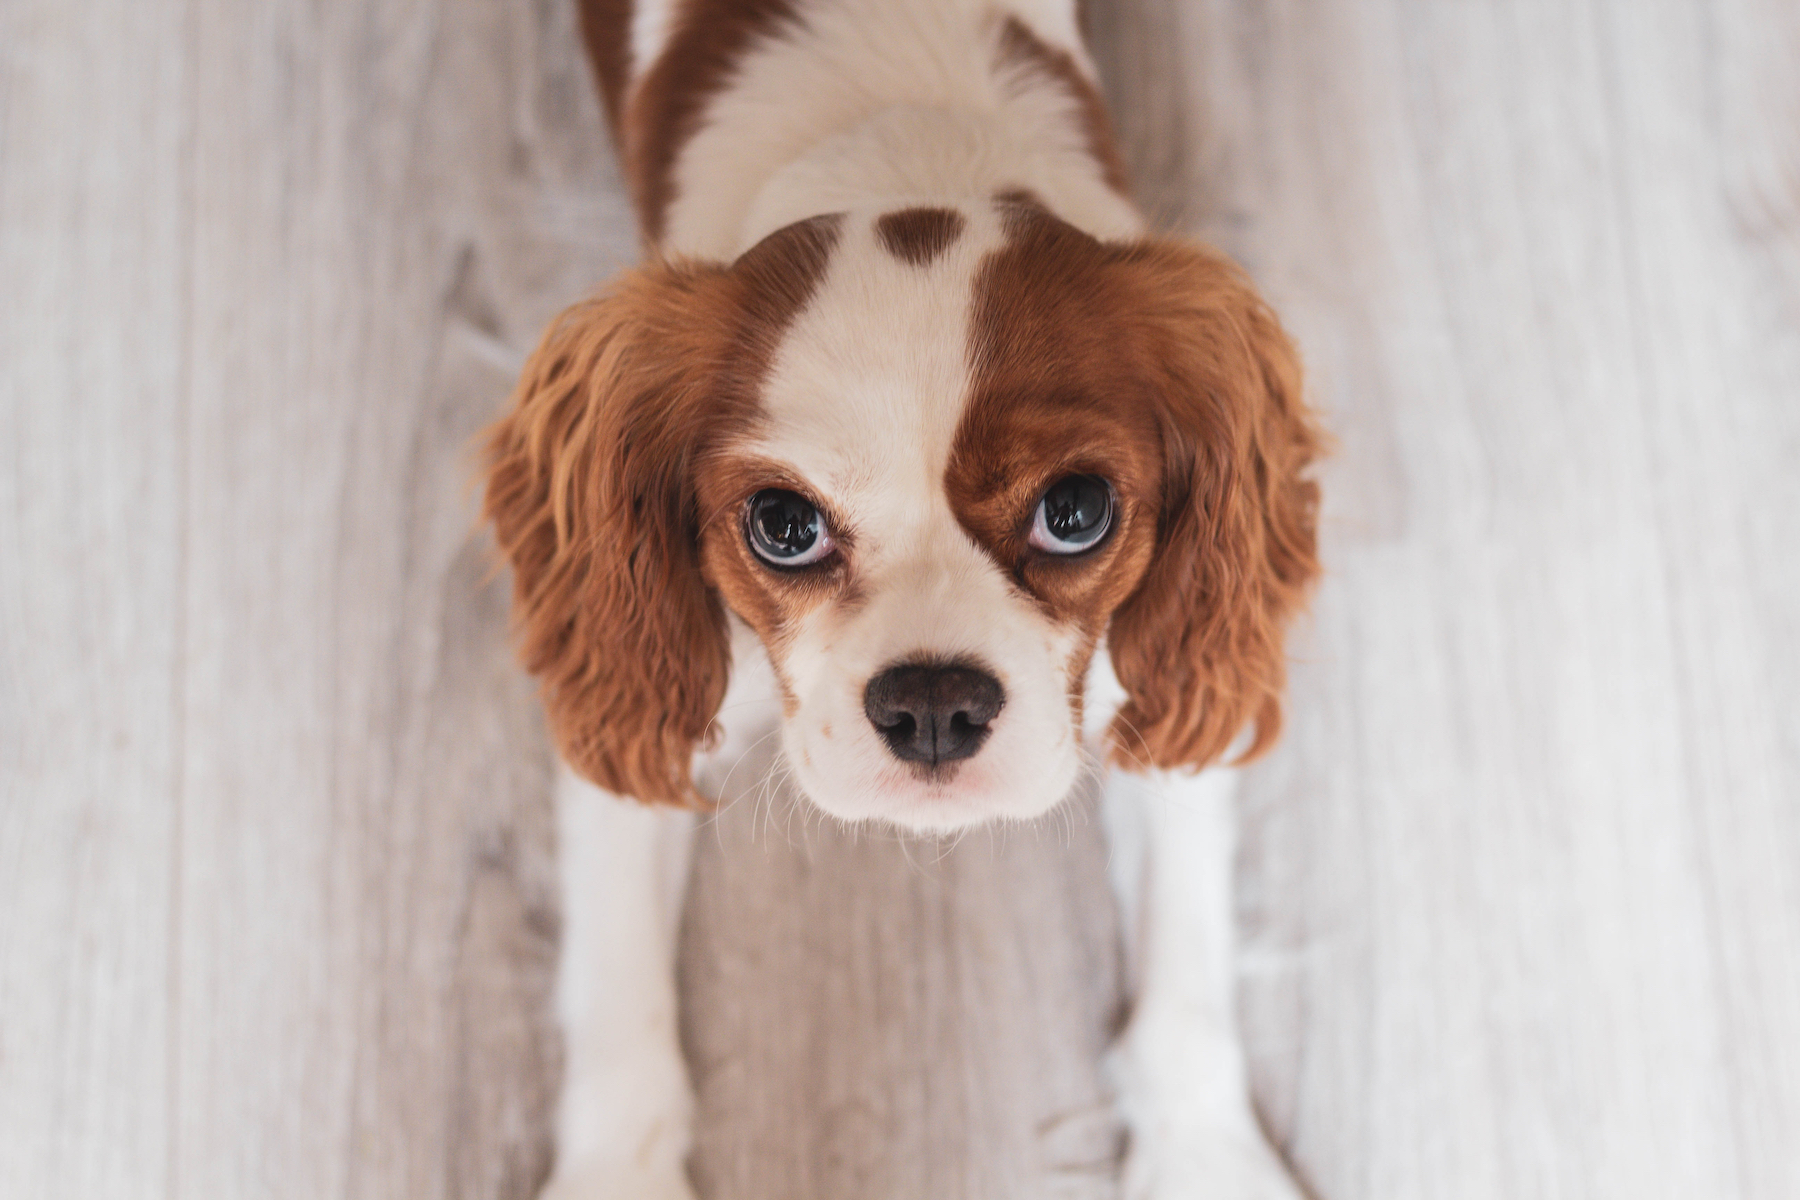 Canva - White and Red Cavalier King Charles Spaniel Puppy Close-up Photo